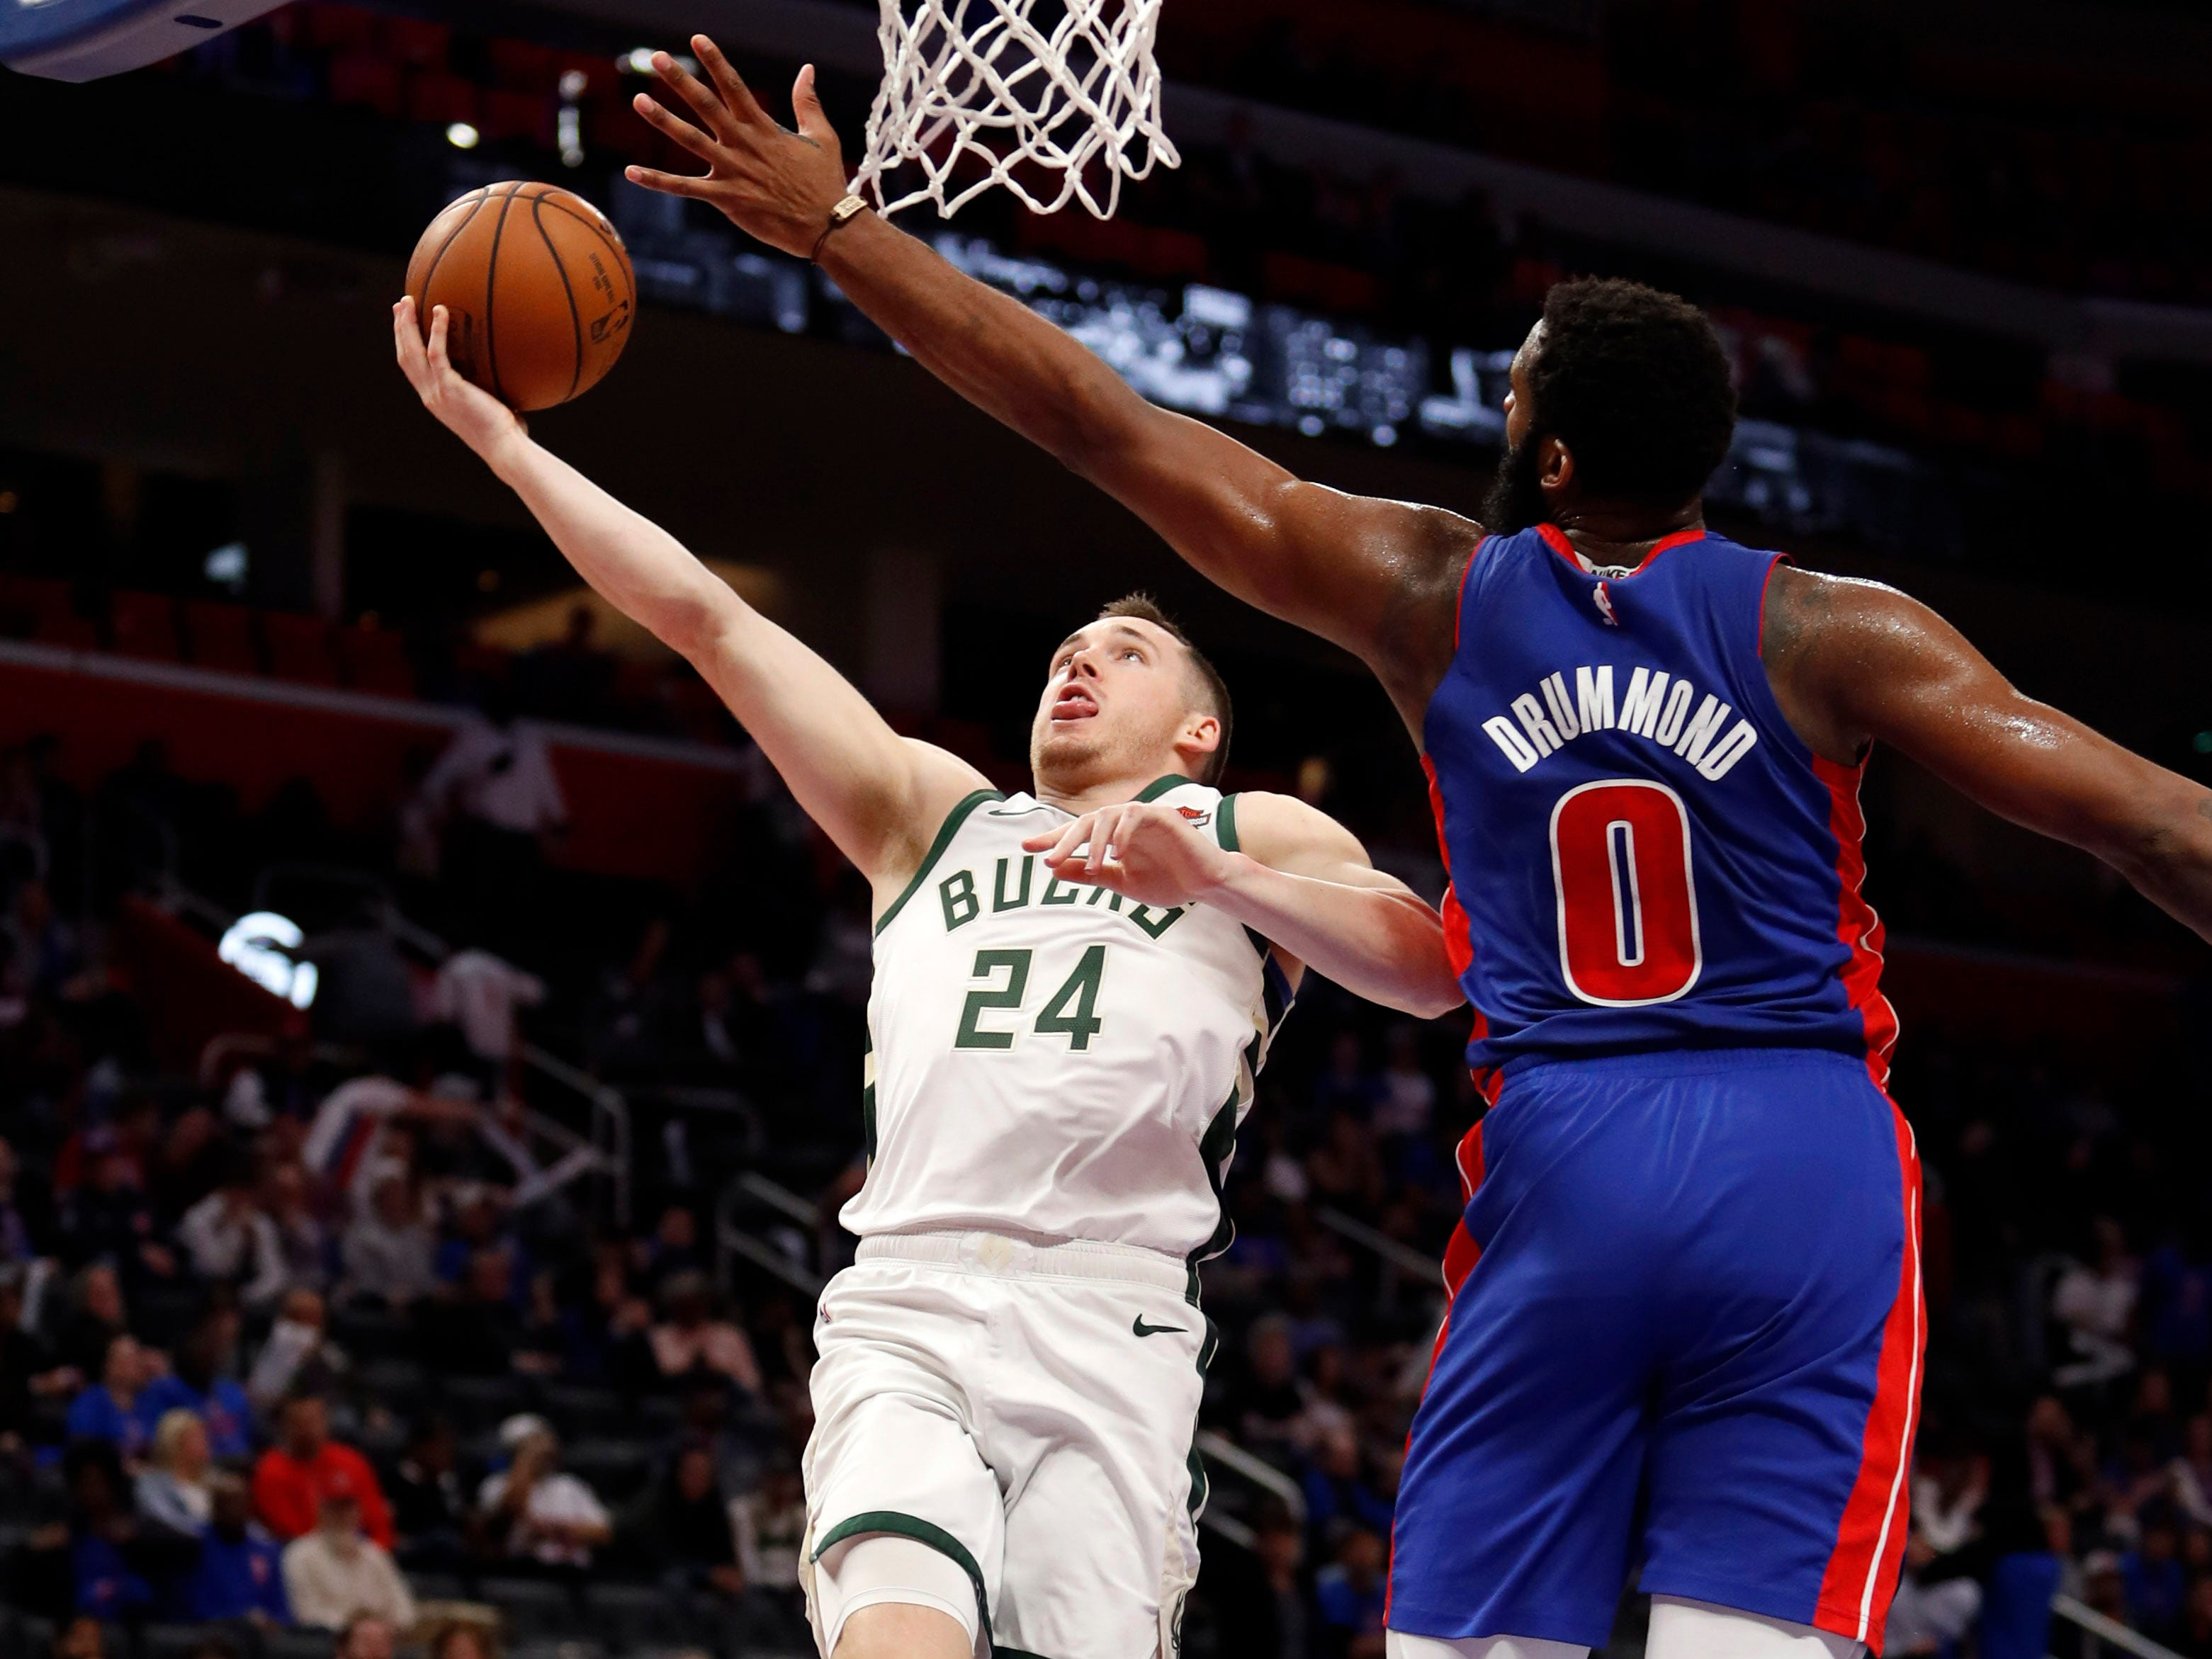 April 20: Bucks guard Pat Connaughton (24) drives to the hoop against Pistons defender Andre Drummond (0) during Game 3.